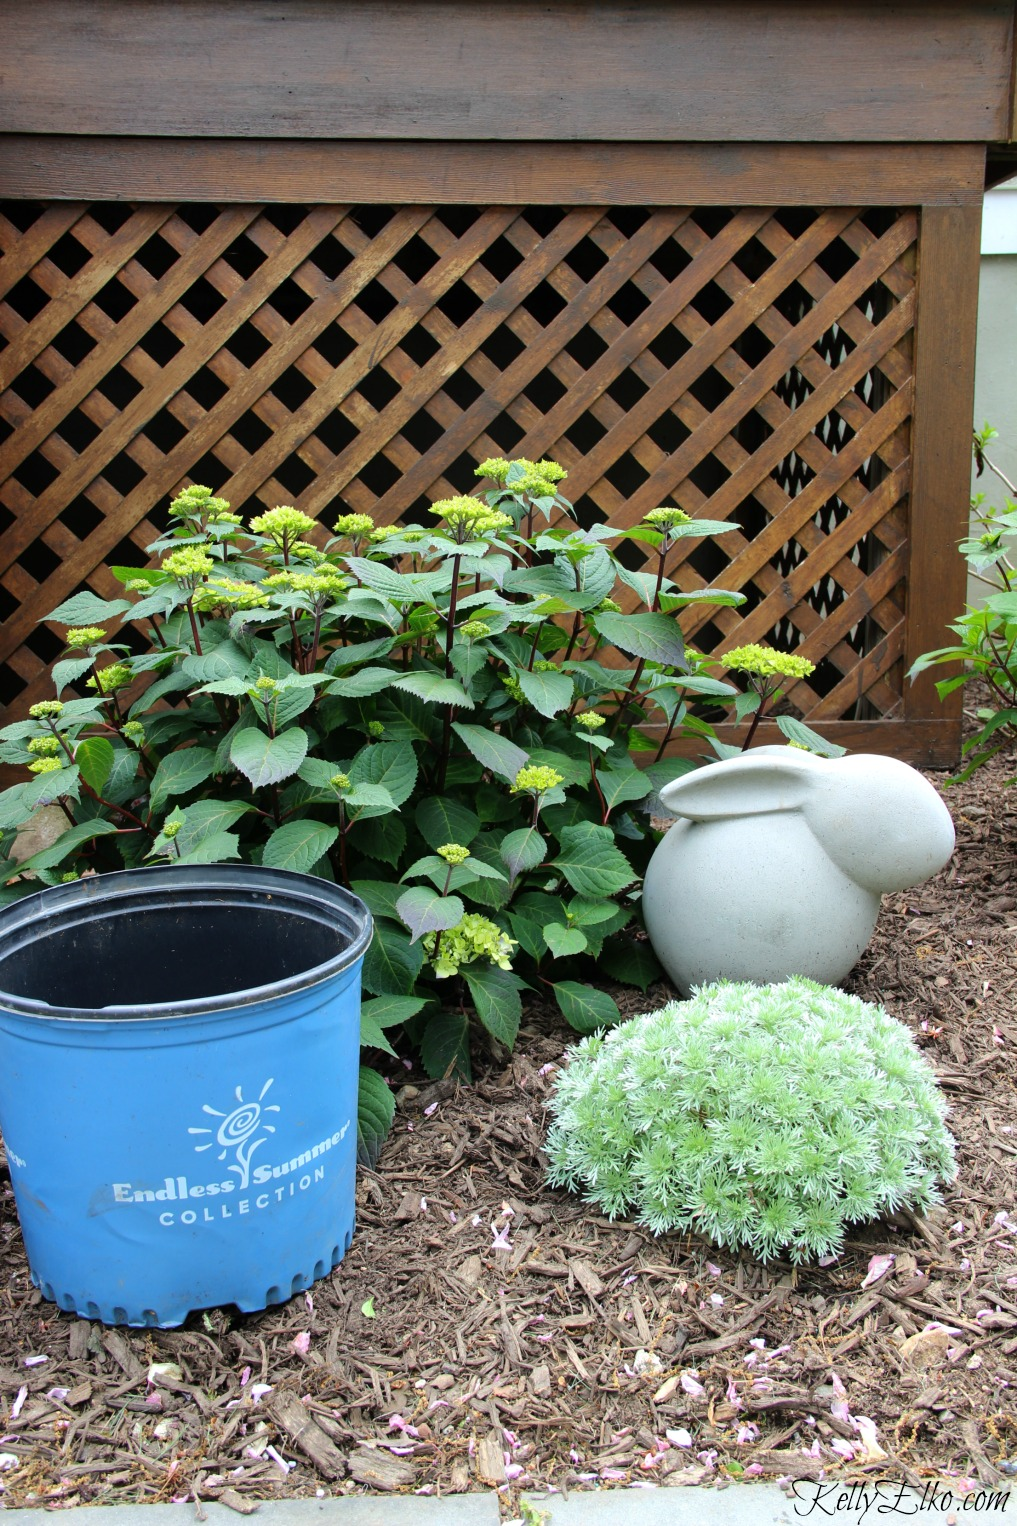 Hydrangeas 101 - the Complete Guide to Growing Beautiful Blooms kellyelko.com #hydrangeas #perennials #hydrangea #gardeners #gardening #gardeningtips #garden #endlessummerhydrangea